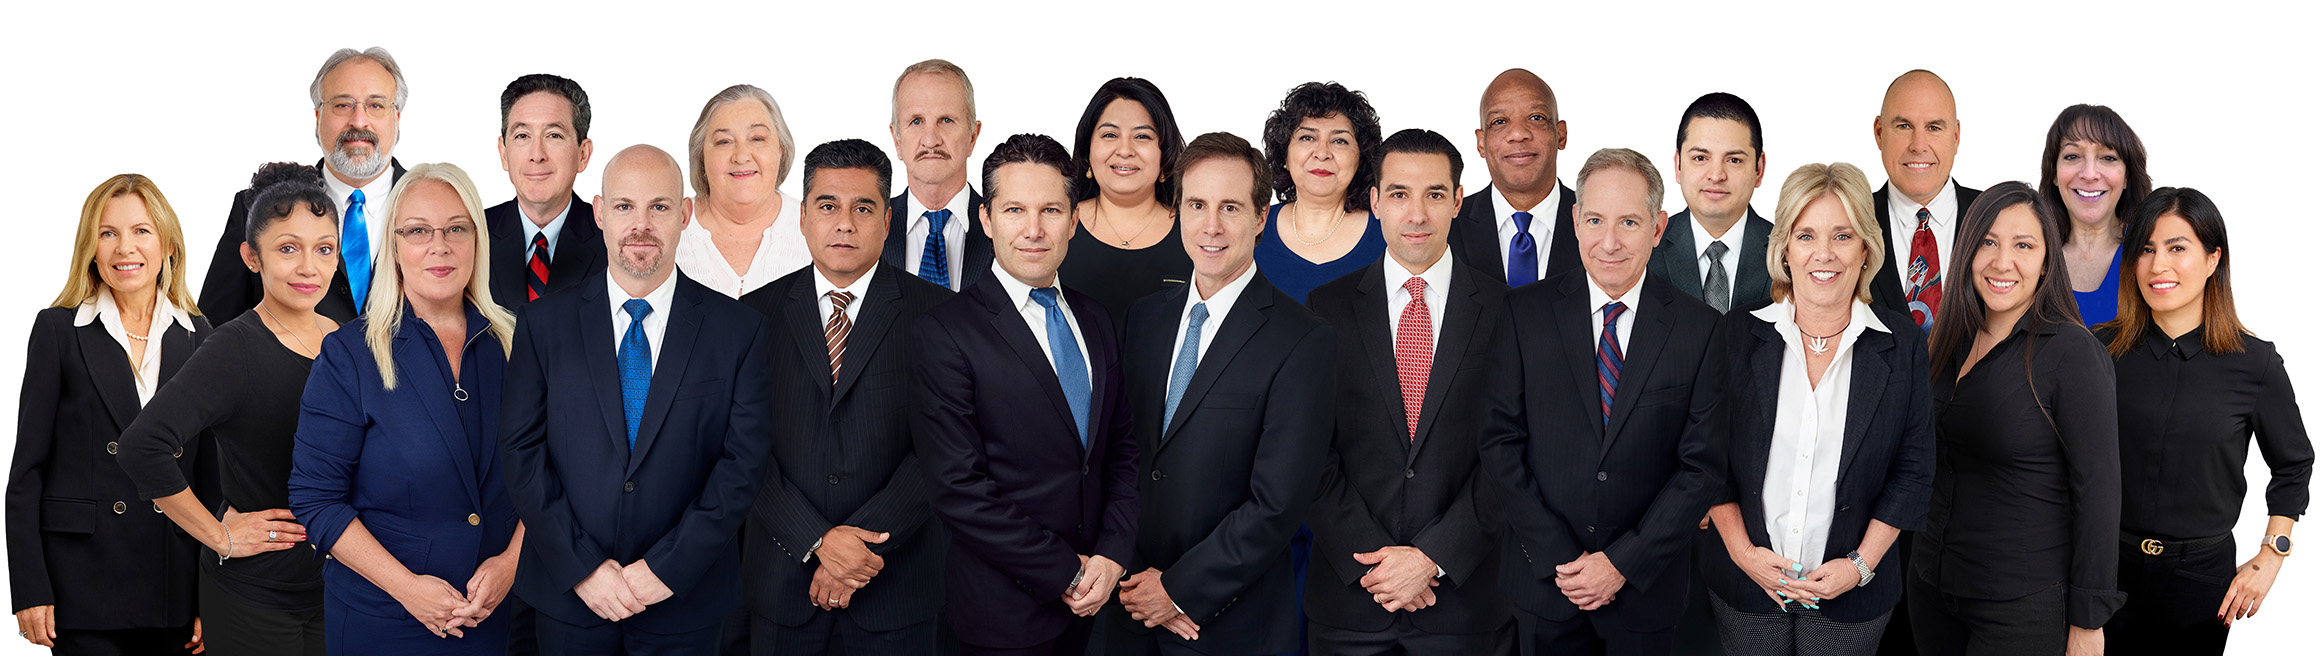 Receivership Specialists: Court-Appointed Court Receivers, Court Referees, and Chapter 11 Bankruptcy Trustees